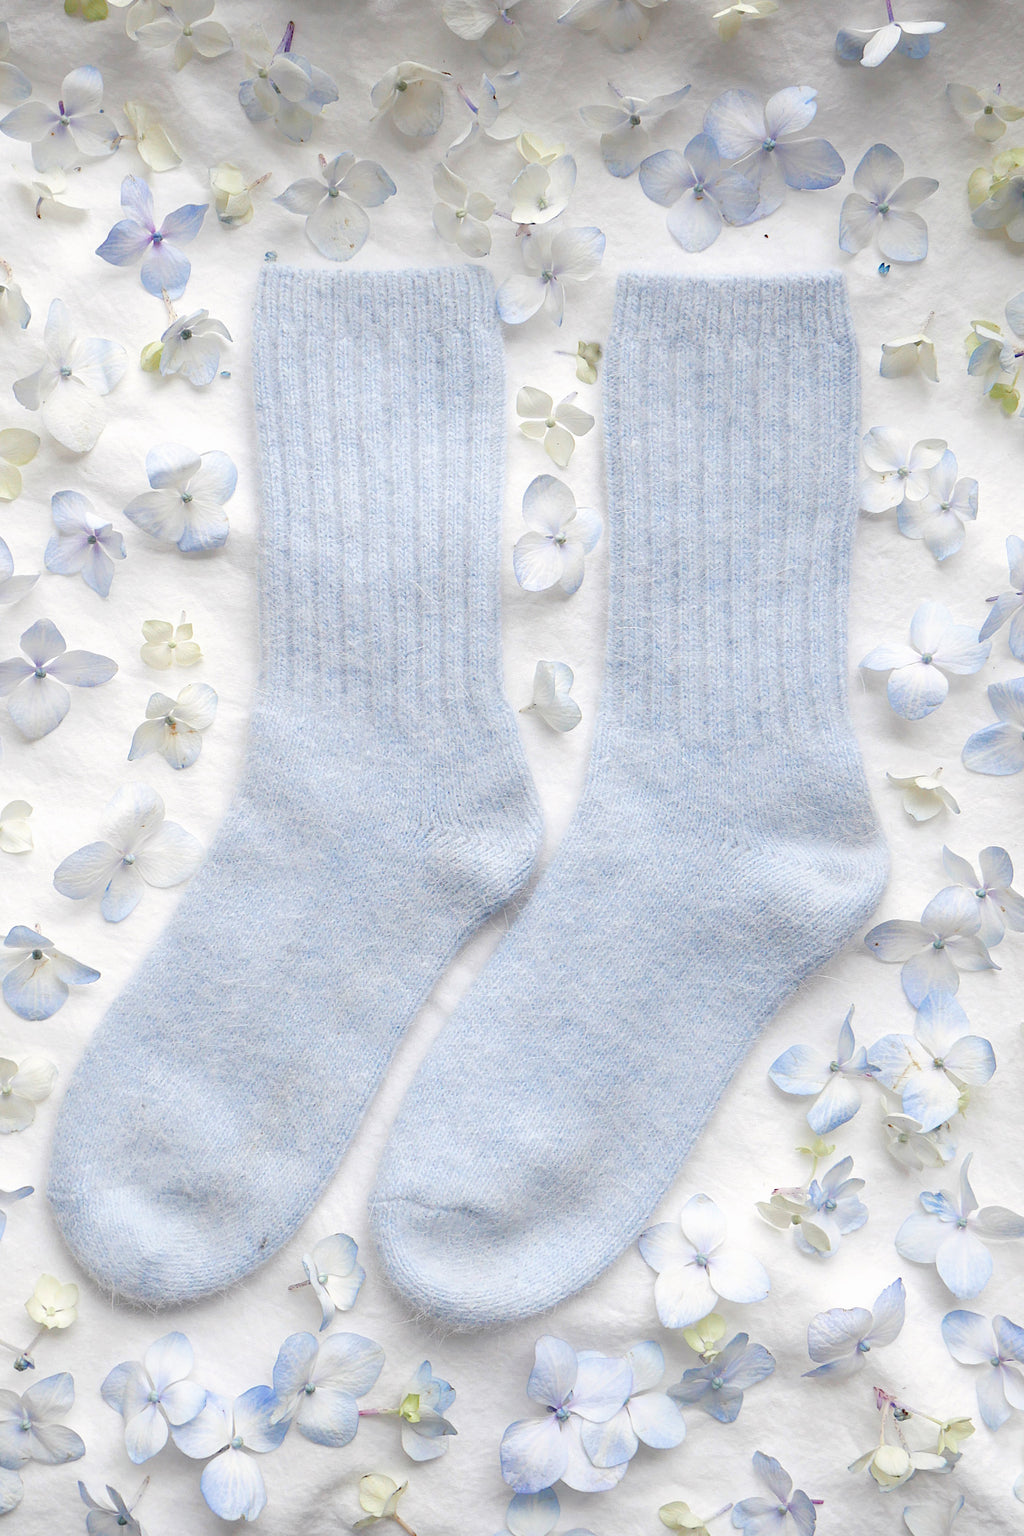 Super Soft Wool Socks - Blue